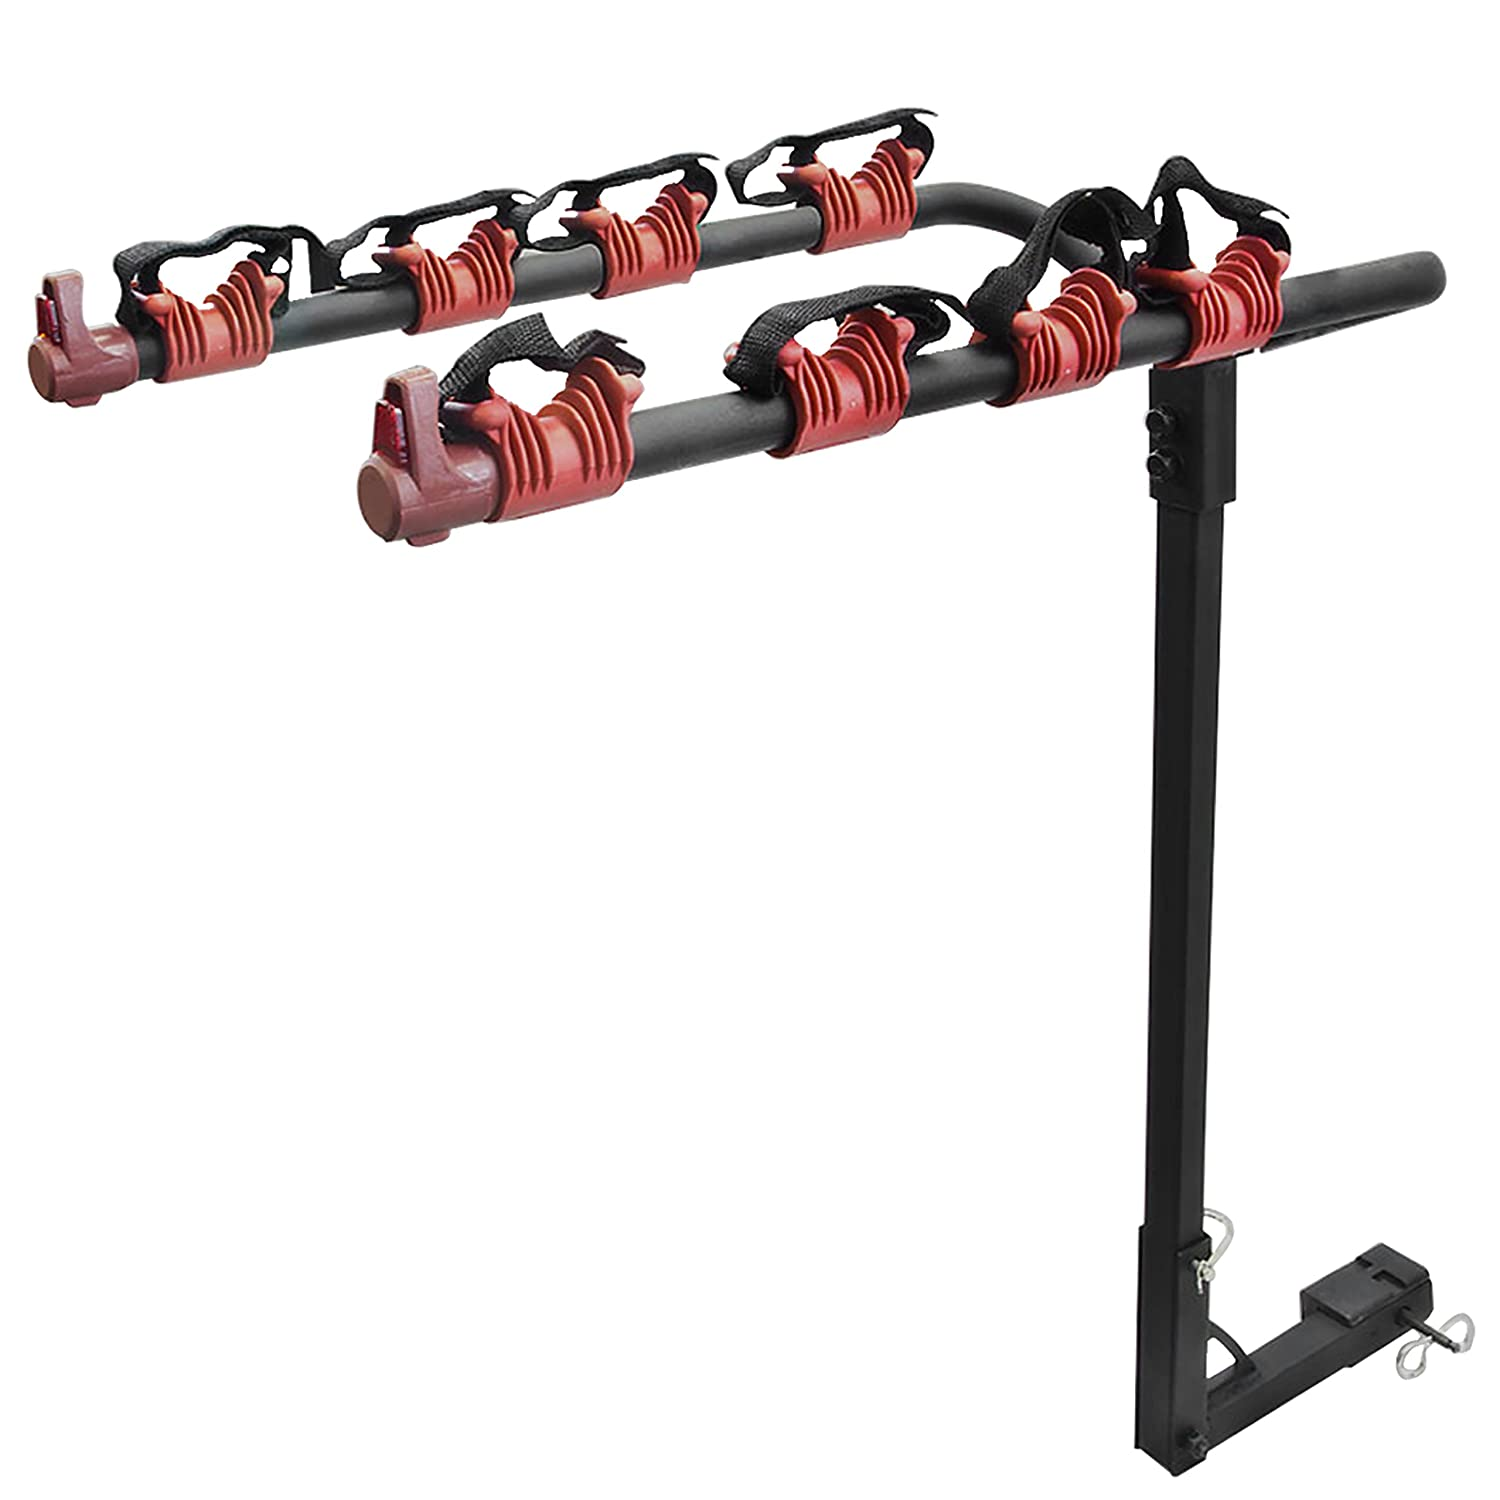 outdoors in rack l car model racks fitness dp sports bike bikerz mounted trunkz bicycle amazon rear